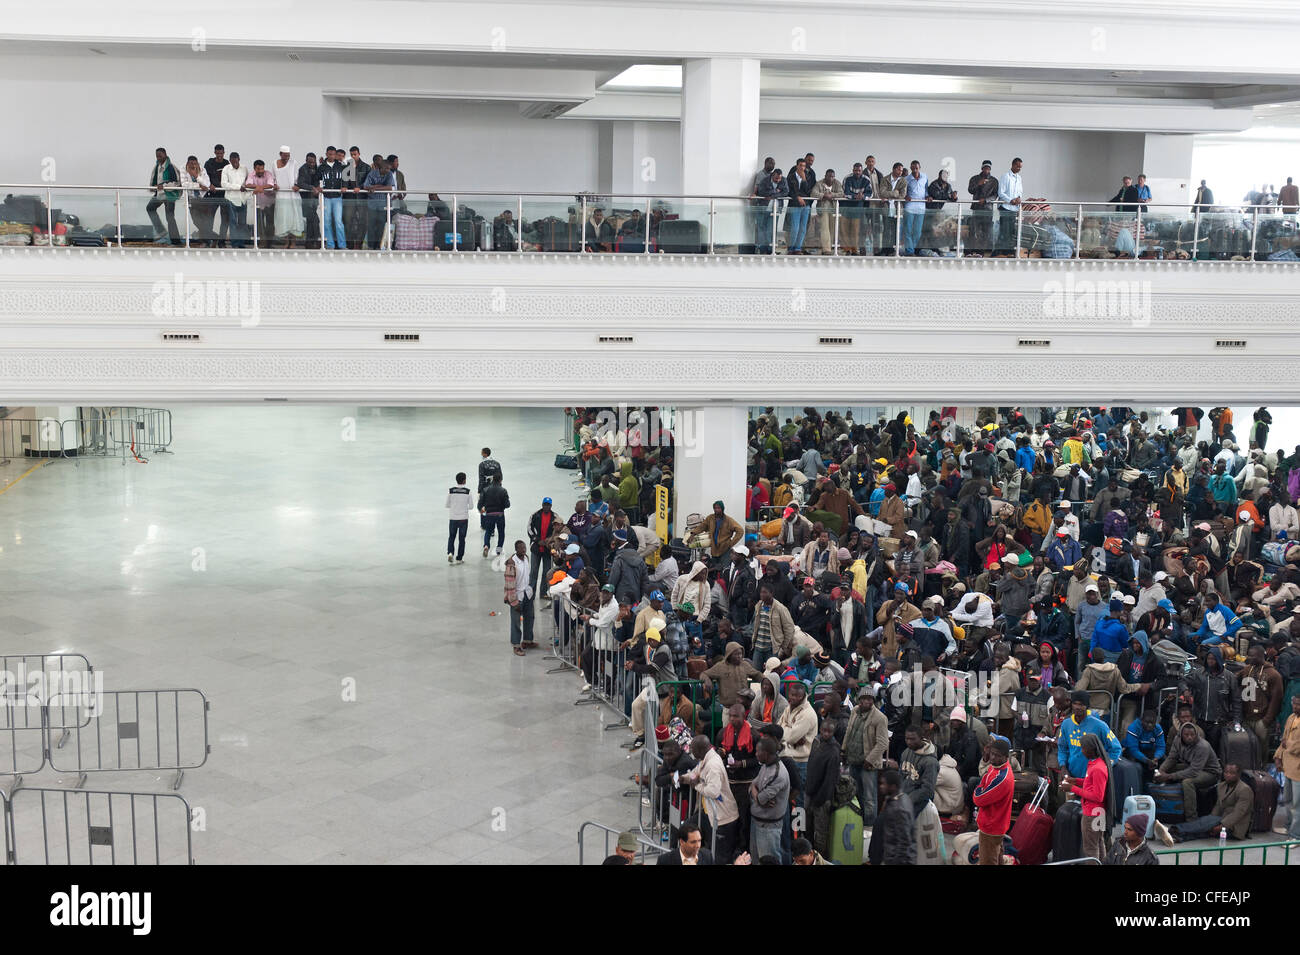 Djerba Airport. Tunisia.  Around 15000  refugees evacuated from Libya waiting for planes to take them back home. - Stock Image